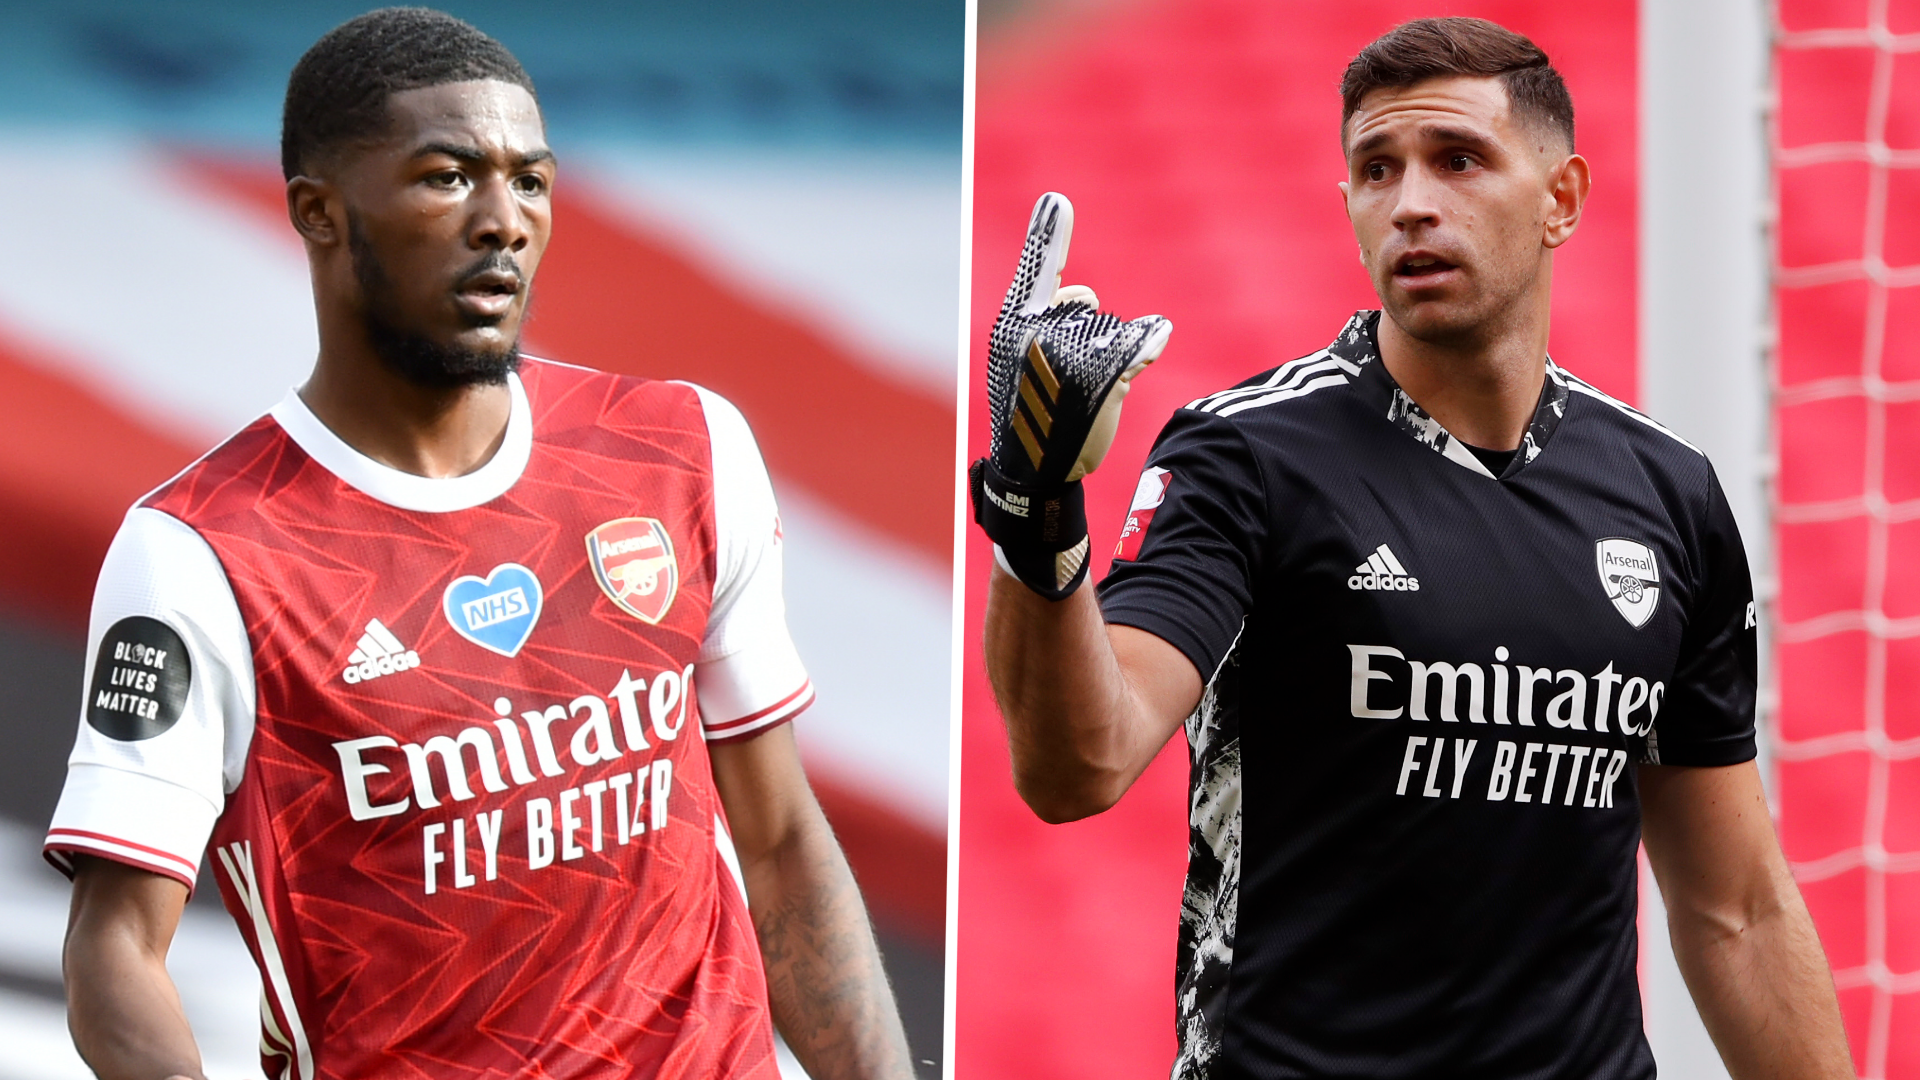 England call-up Conor Coady and Ainsley Maitland-Niles for Nations League games